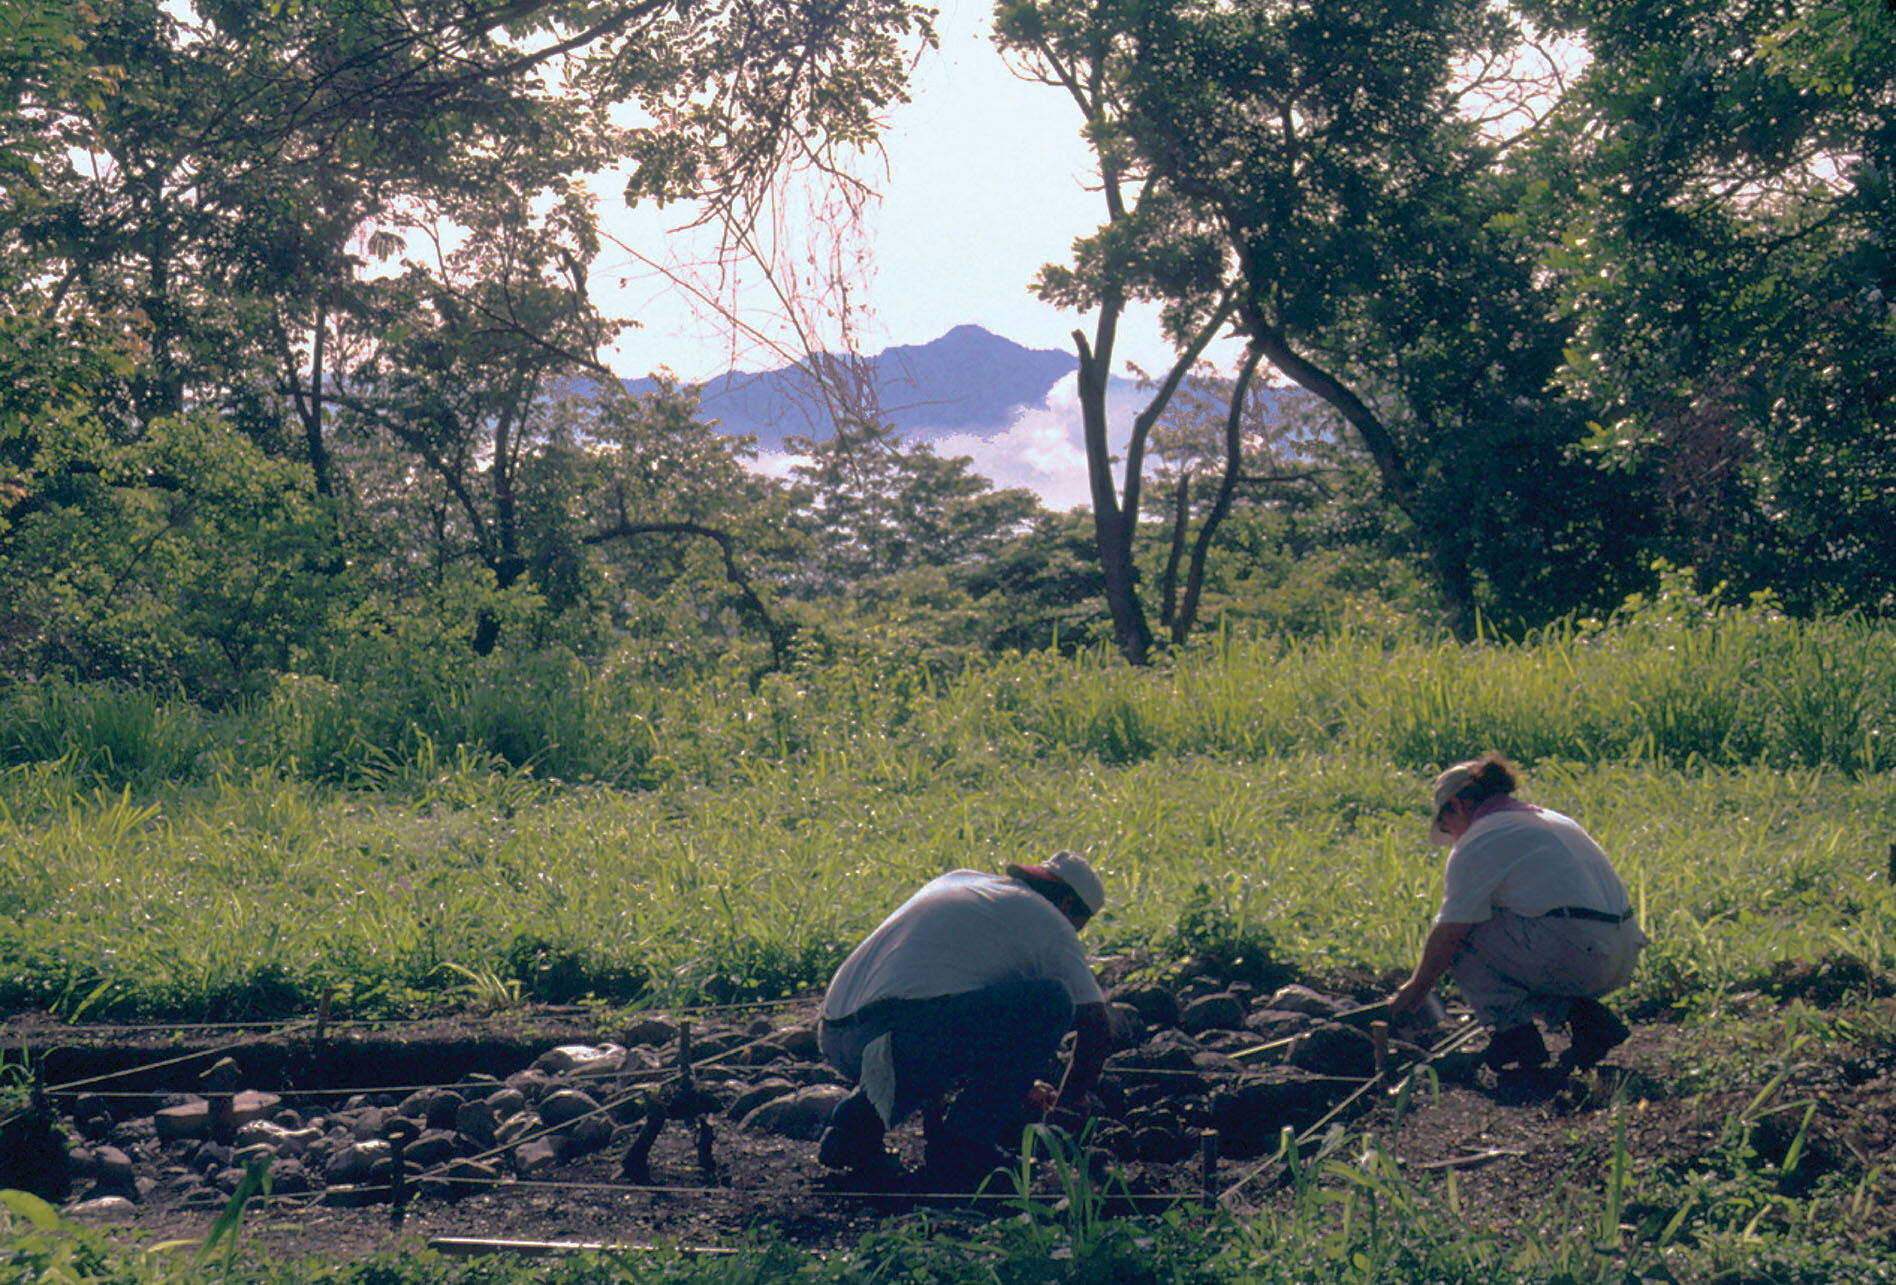 Julia Hendon leads excavations in the fields at Cerro Palenque, Honduras, in 2002. (Photo by Jeanine Lopiparo.)